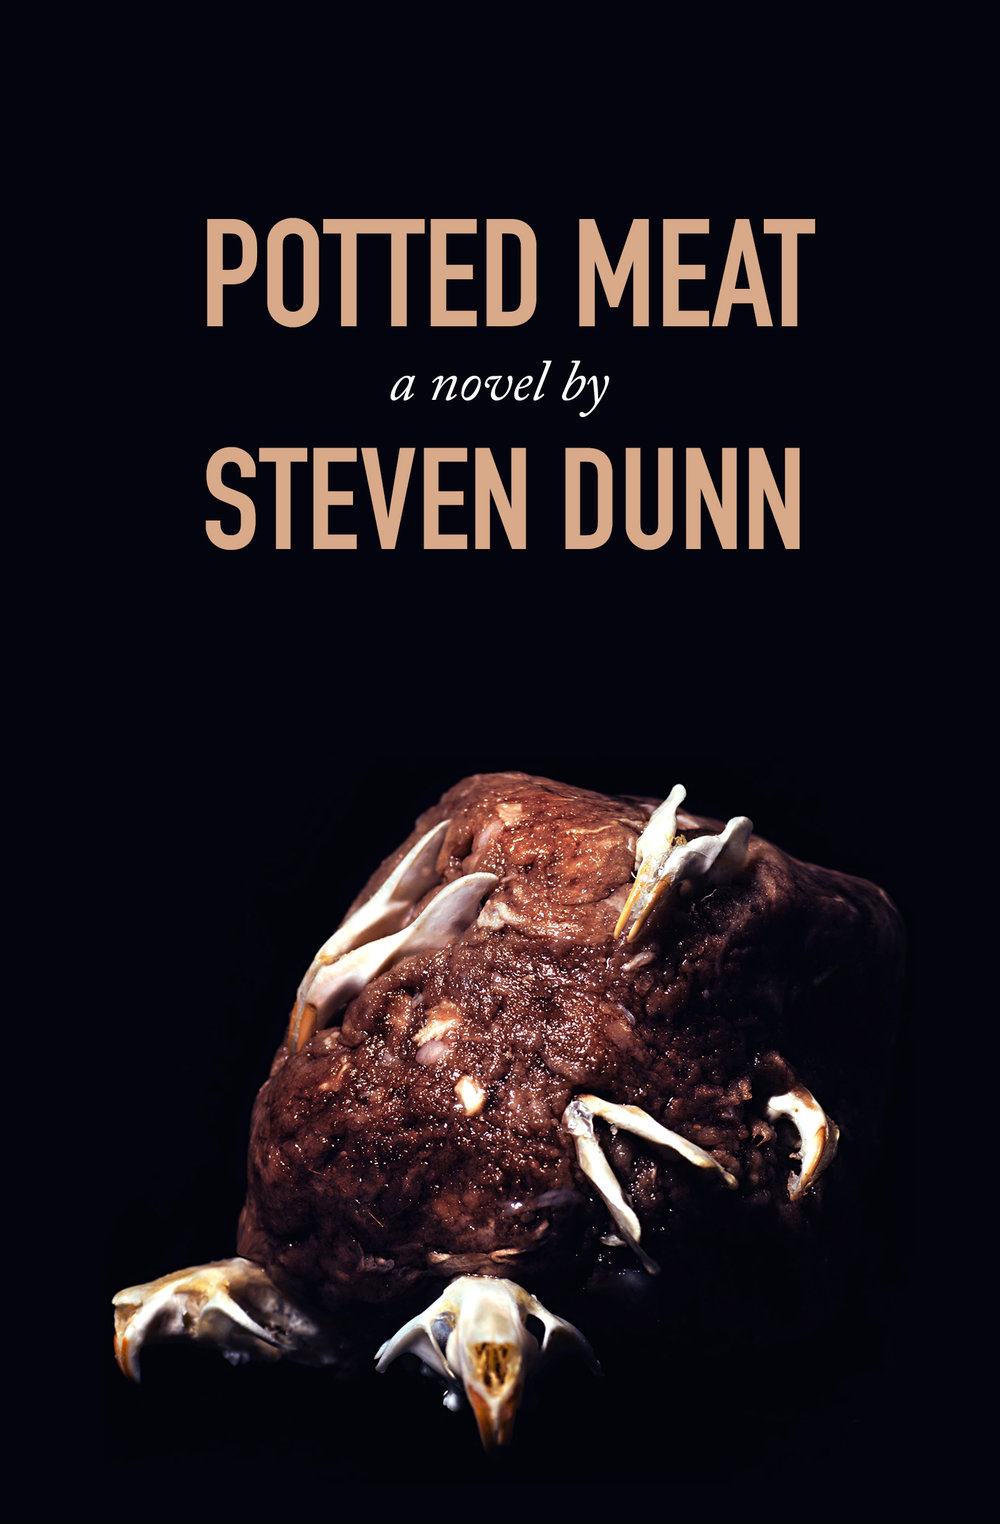 Dunn_Potted_Meat-cover-front-large.jpg